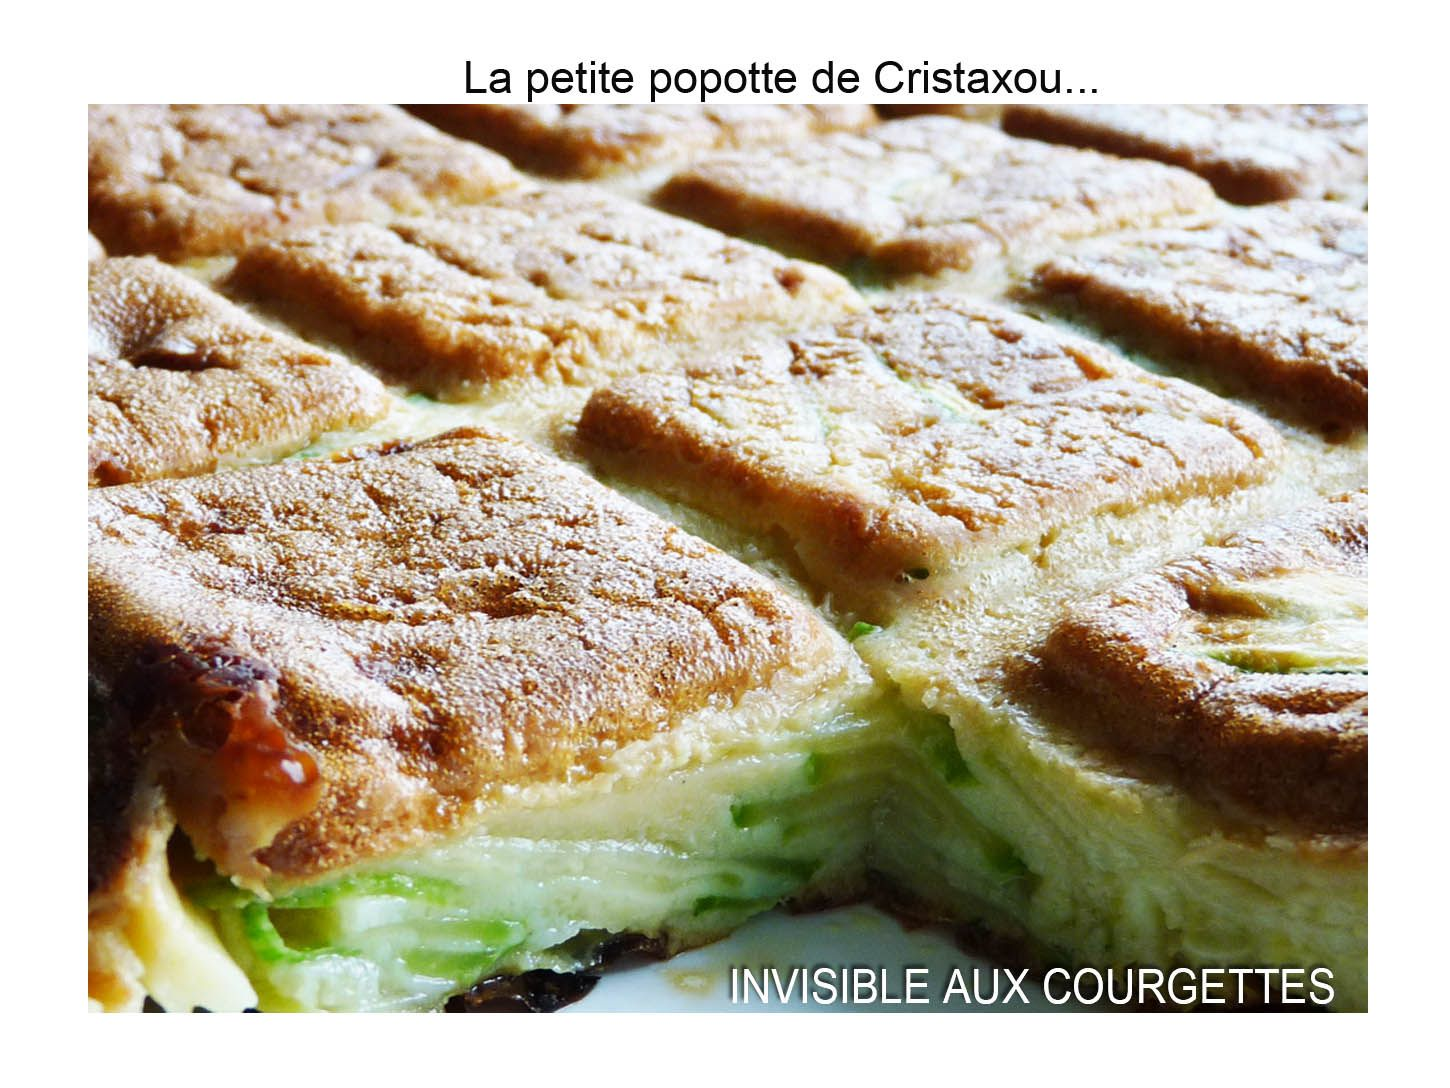 Invisible aux courgettes